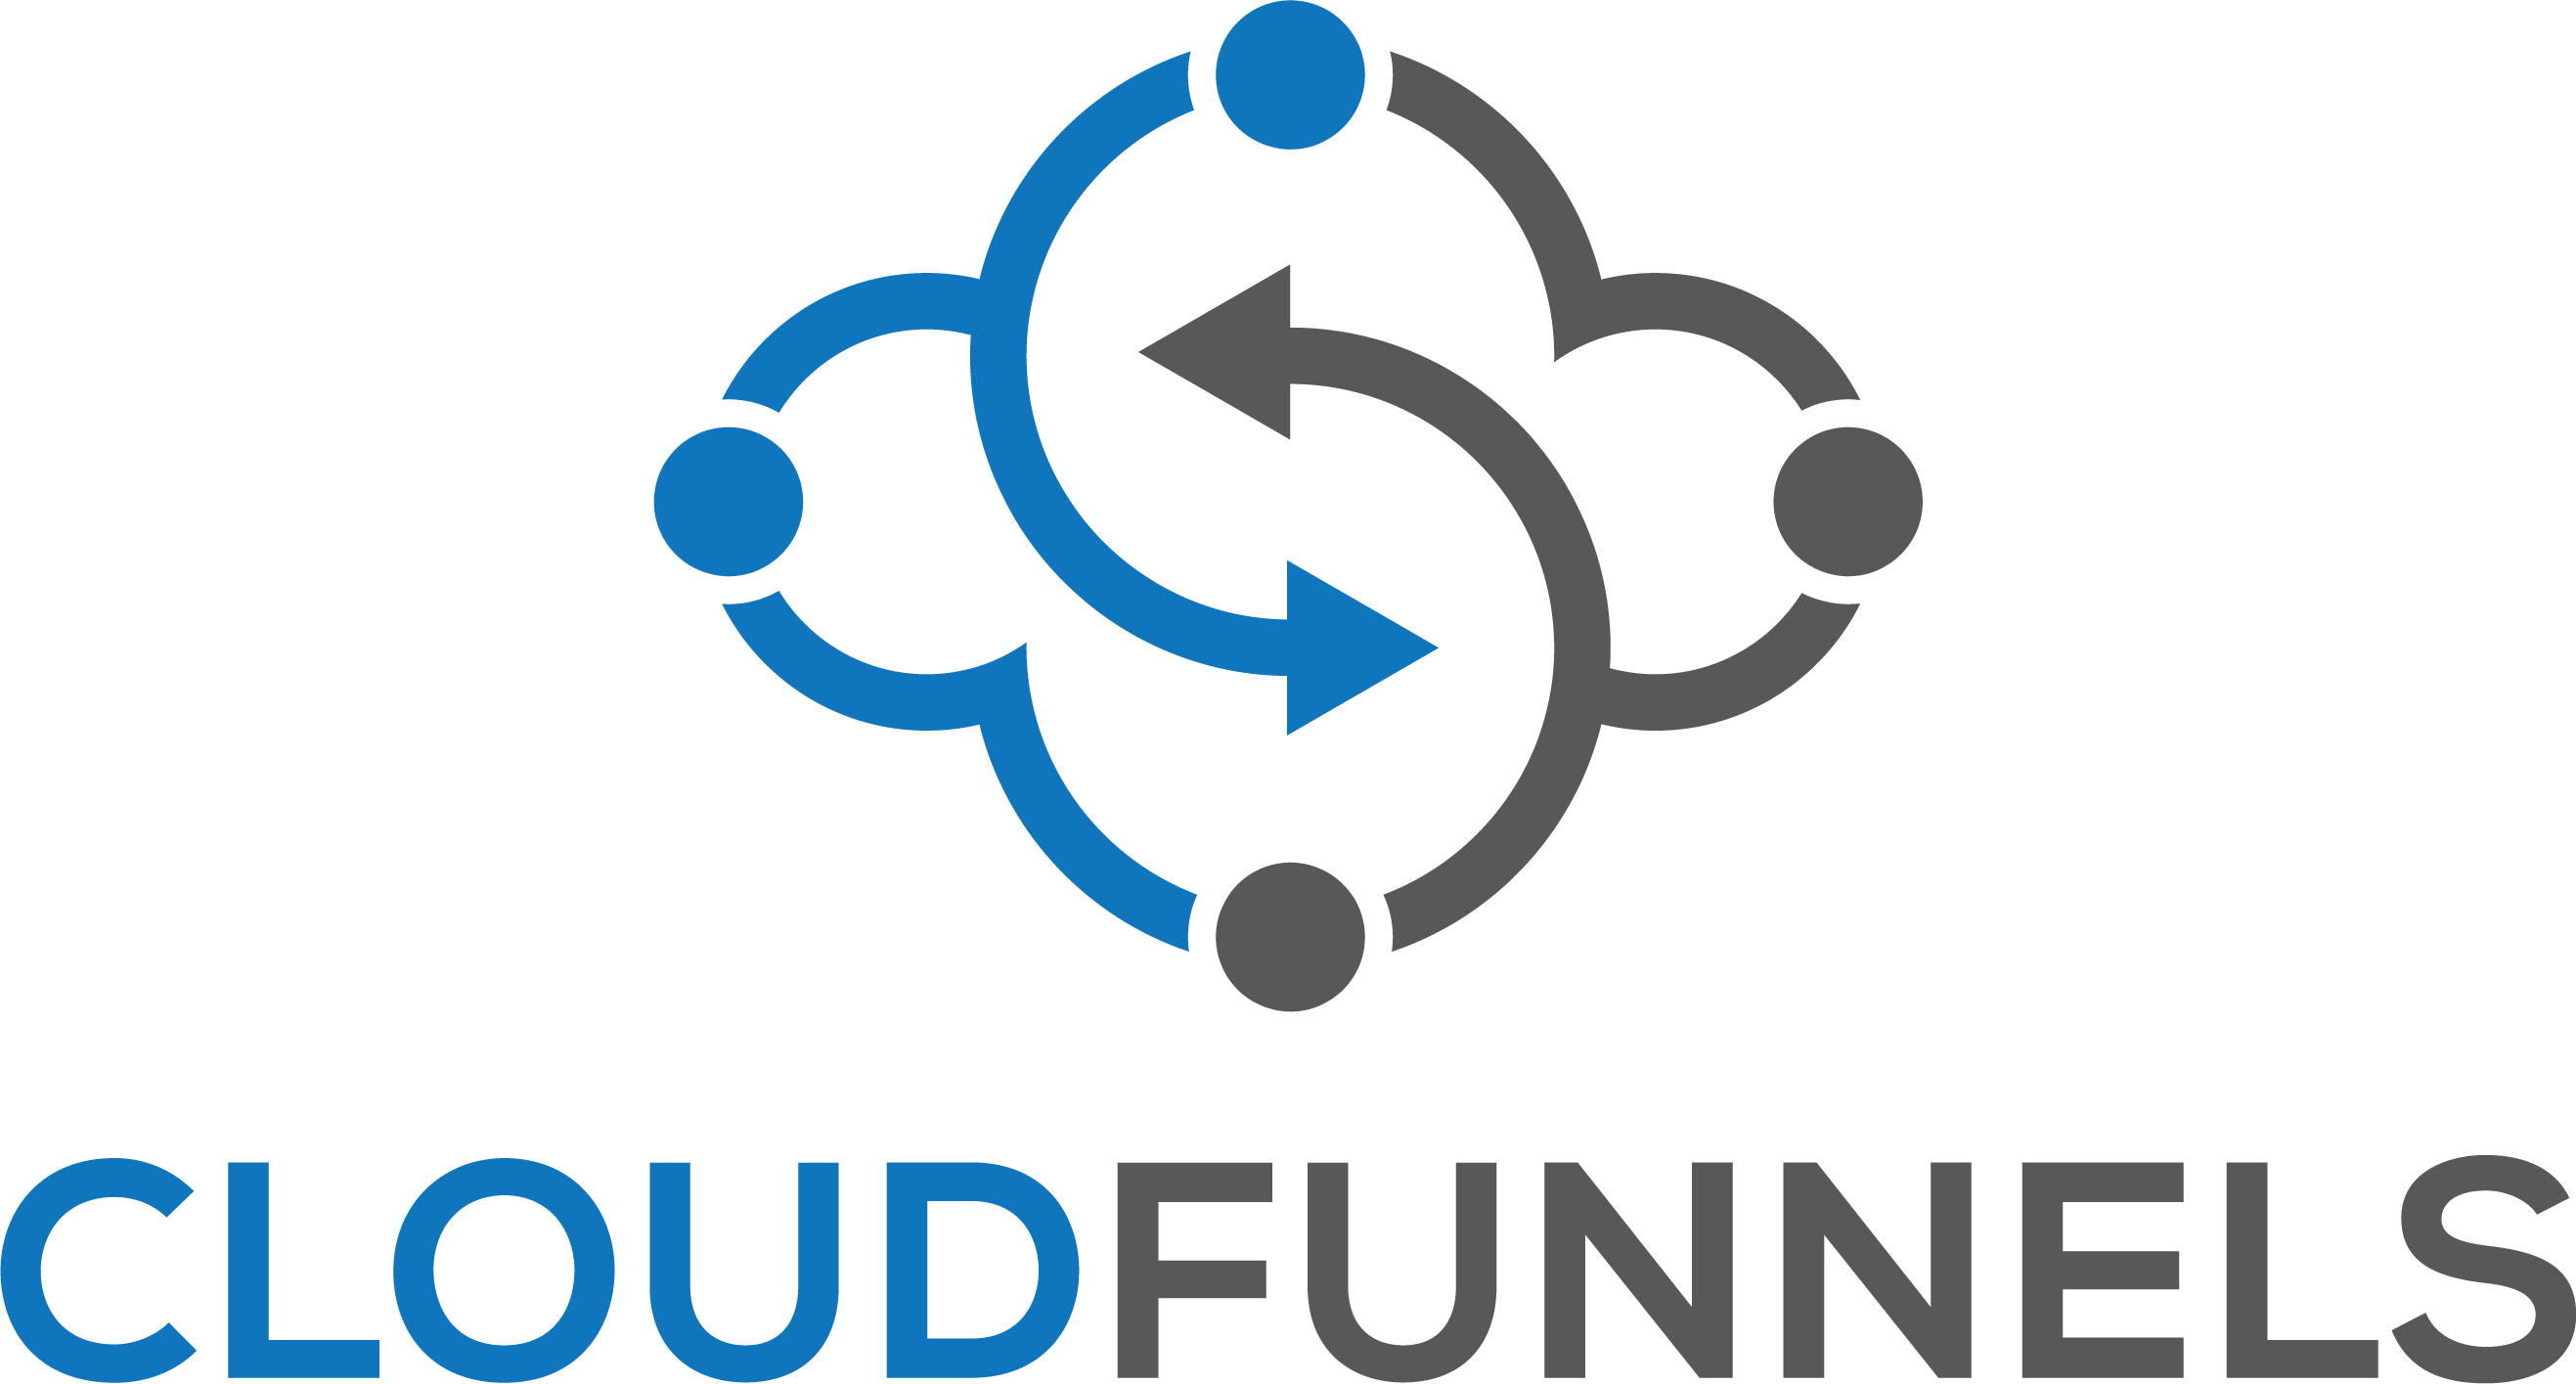 CloudFunnel